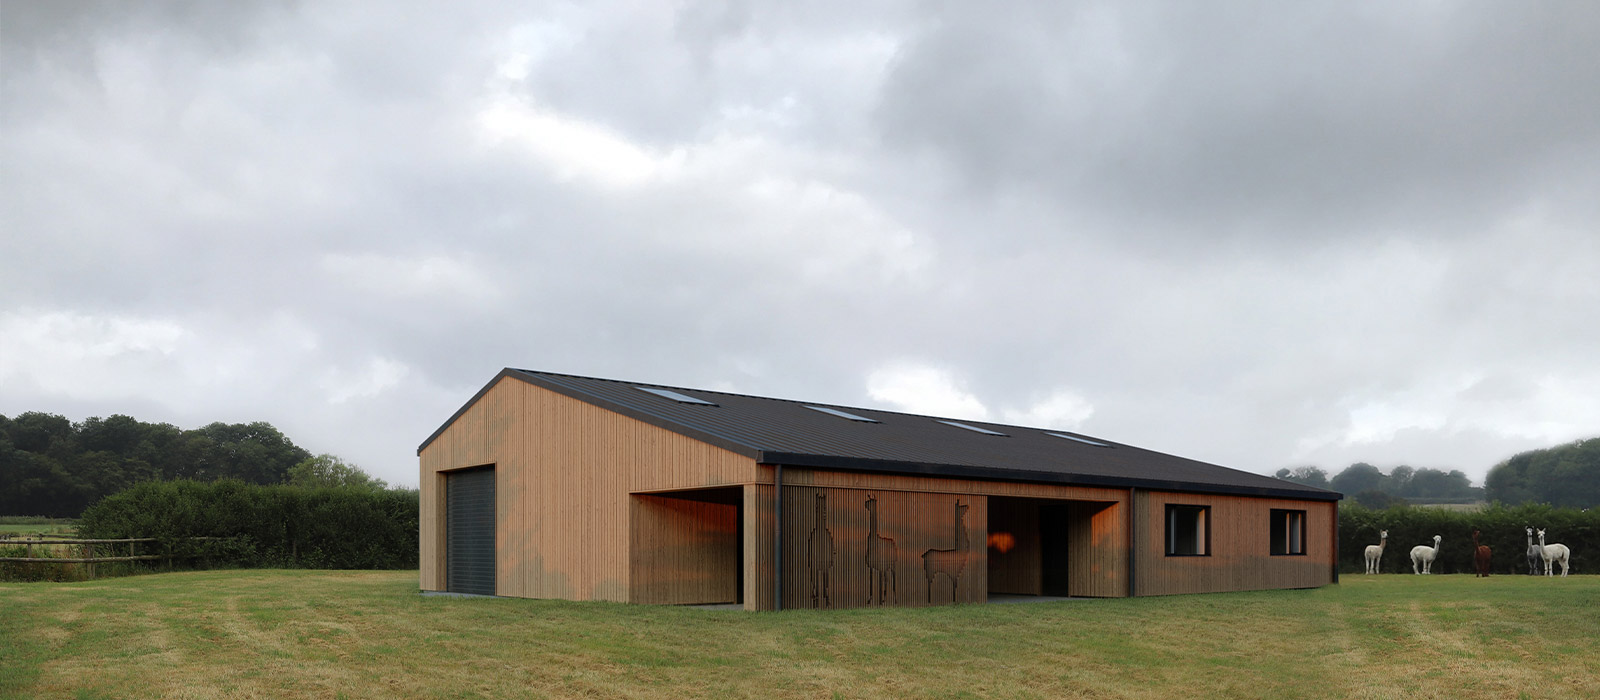 gyd-architecture | 3D render of agricultural barn front elevation